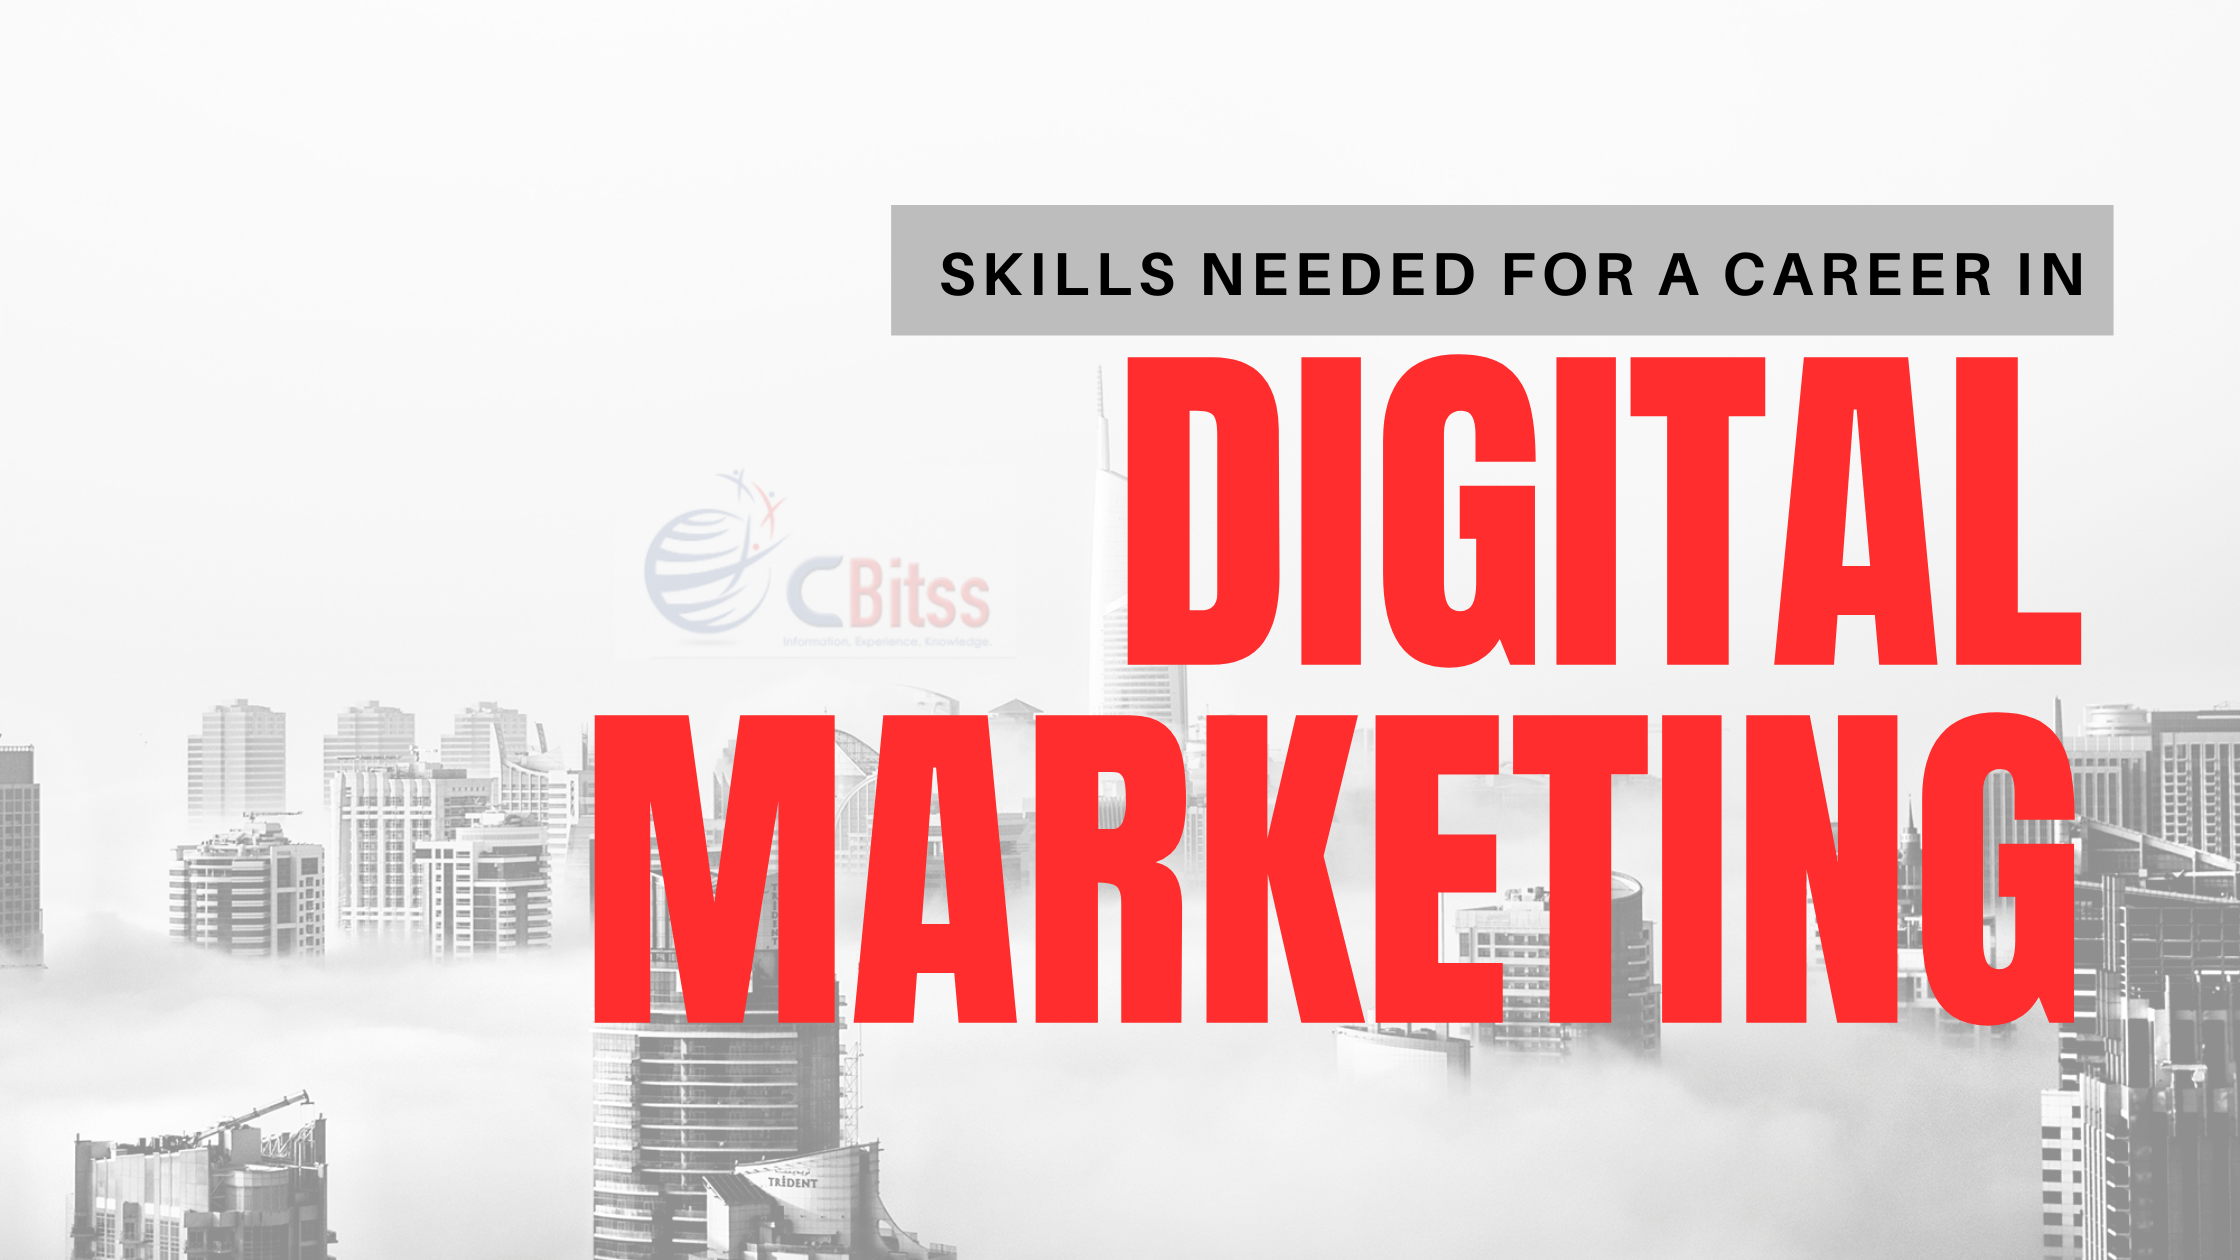 Skills-needed-to-make-a-career-in-digital-marketing.png